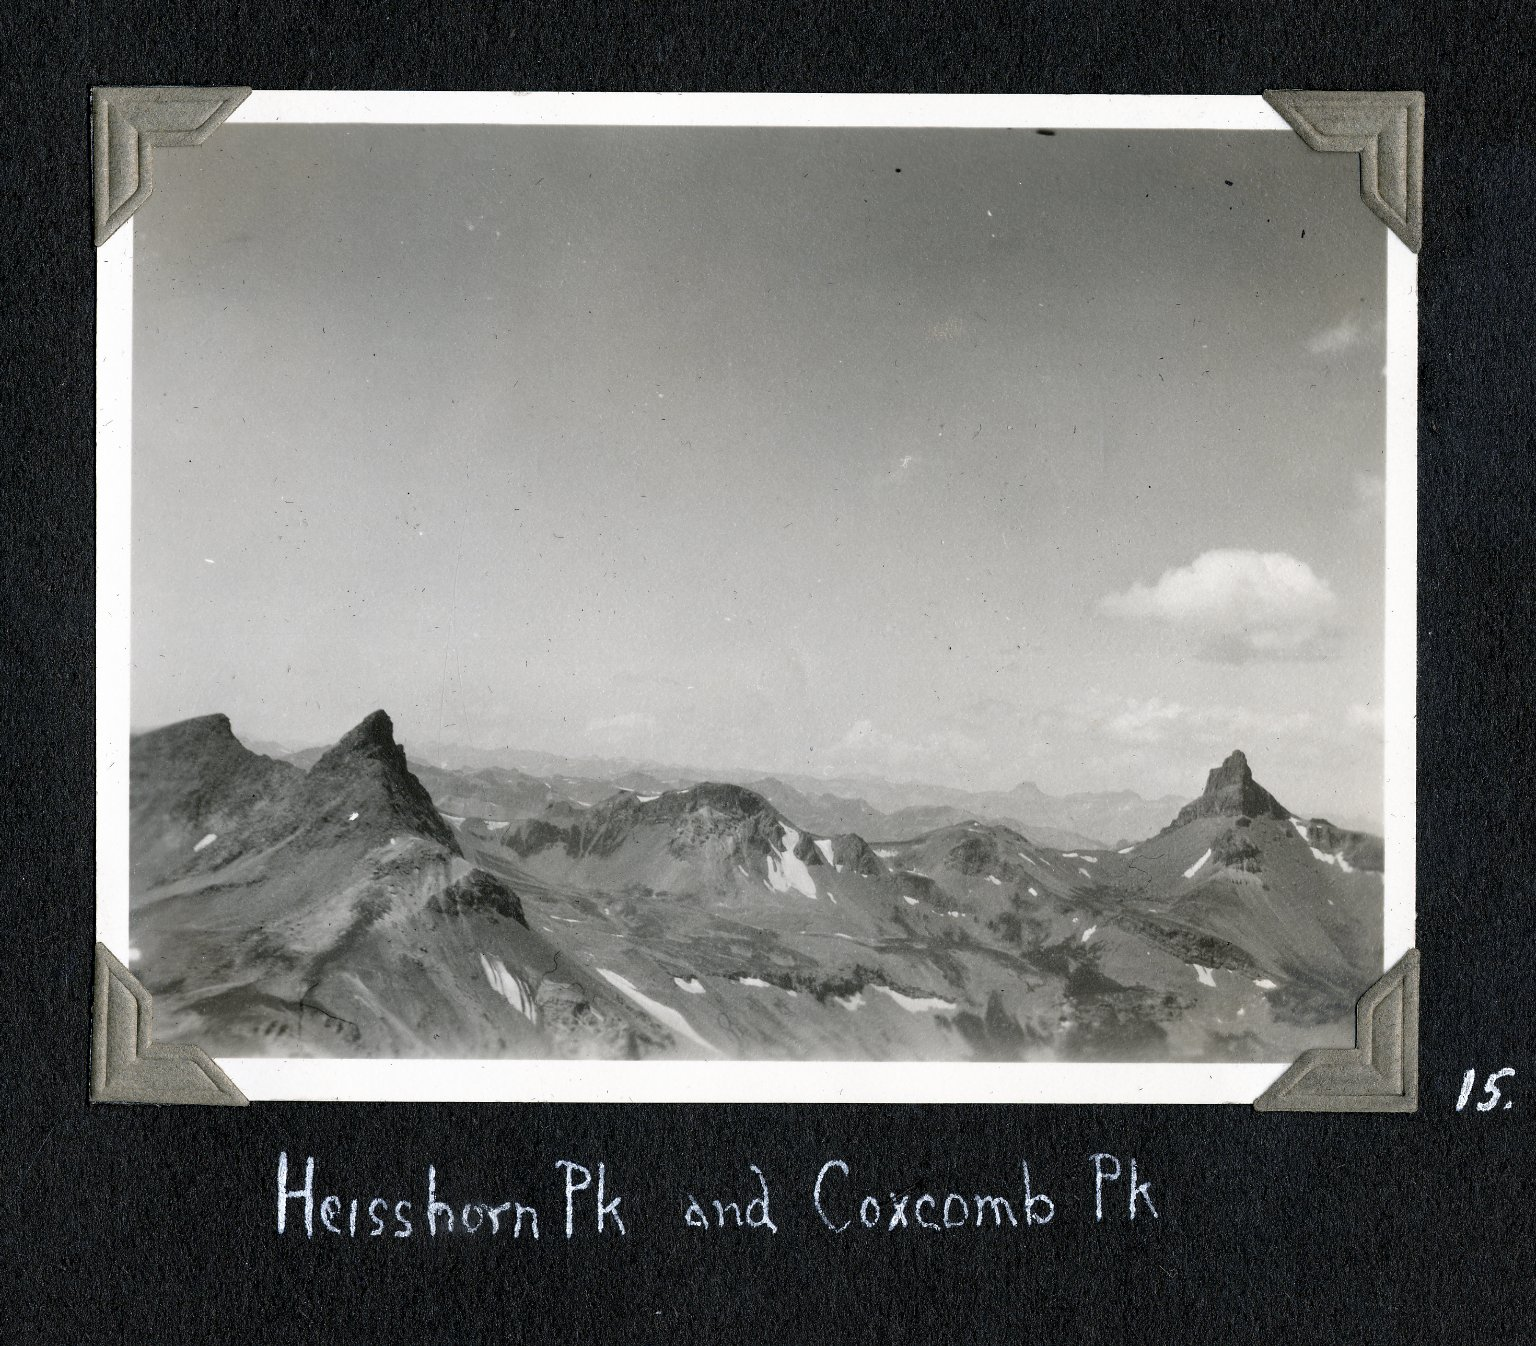 Heisshorn Peak and Coxcomb Peak